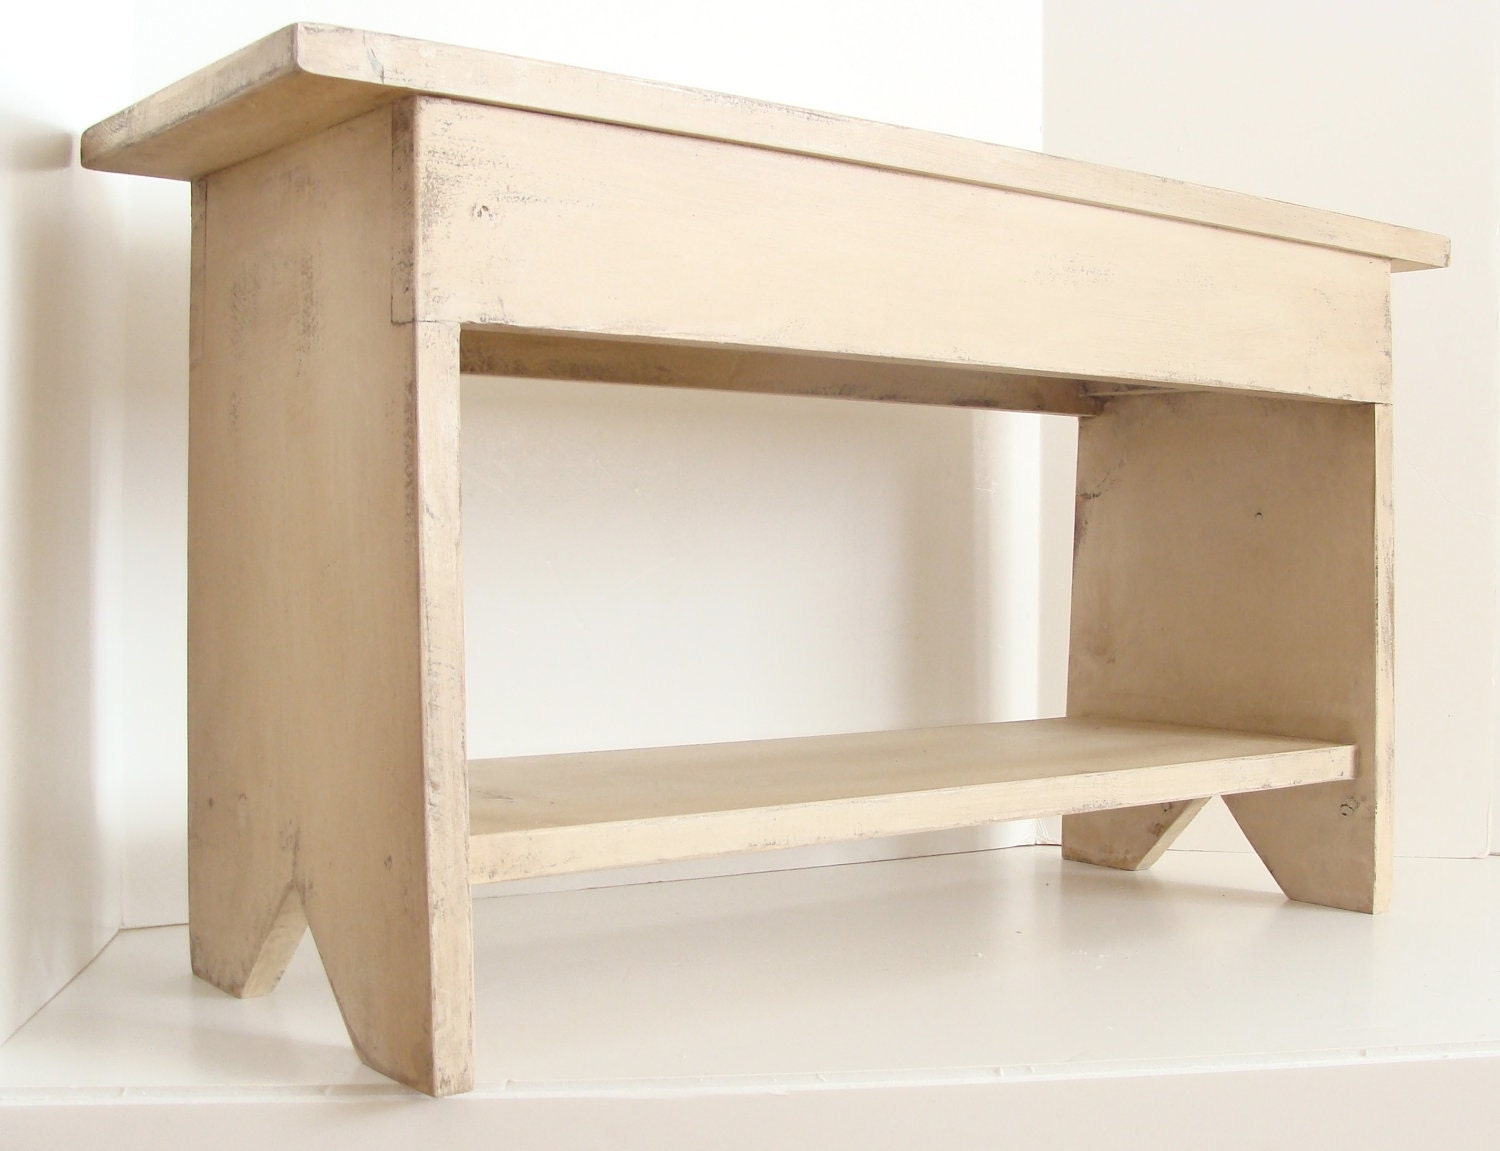 Wood bench storage bench entryway bench kids furniture Bench with shelf